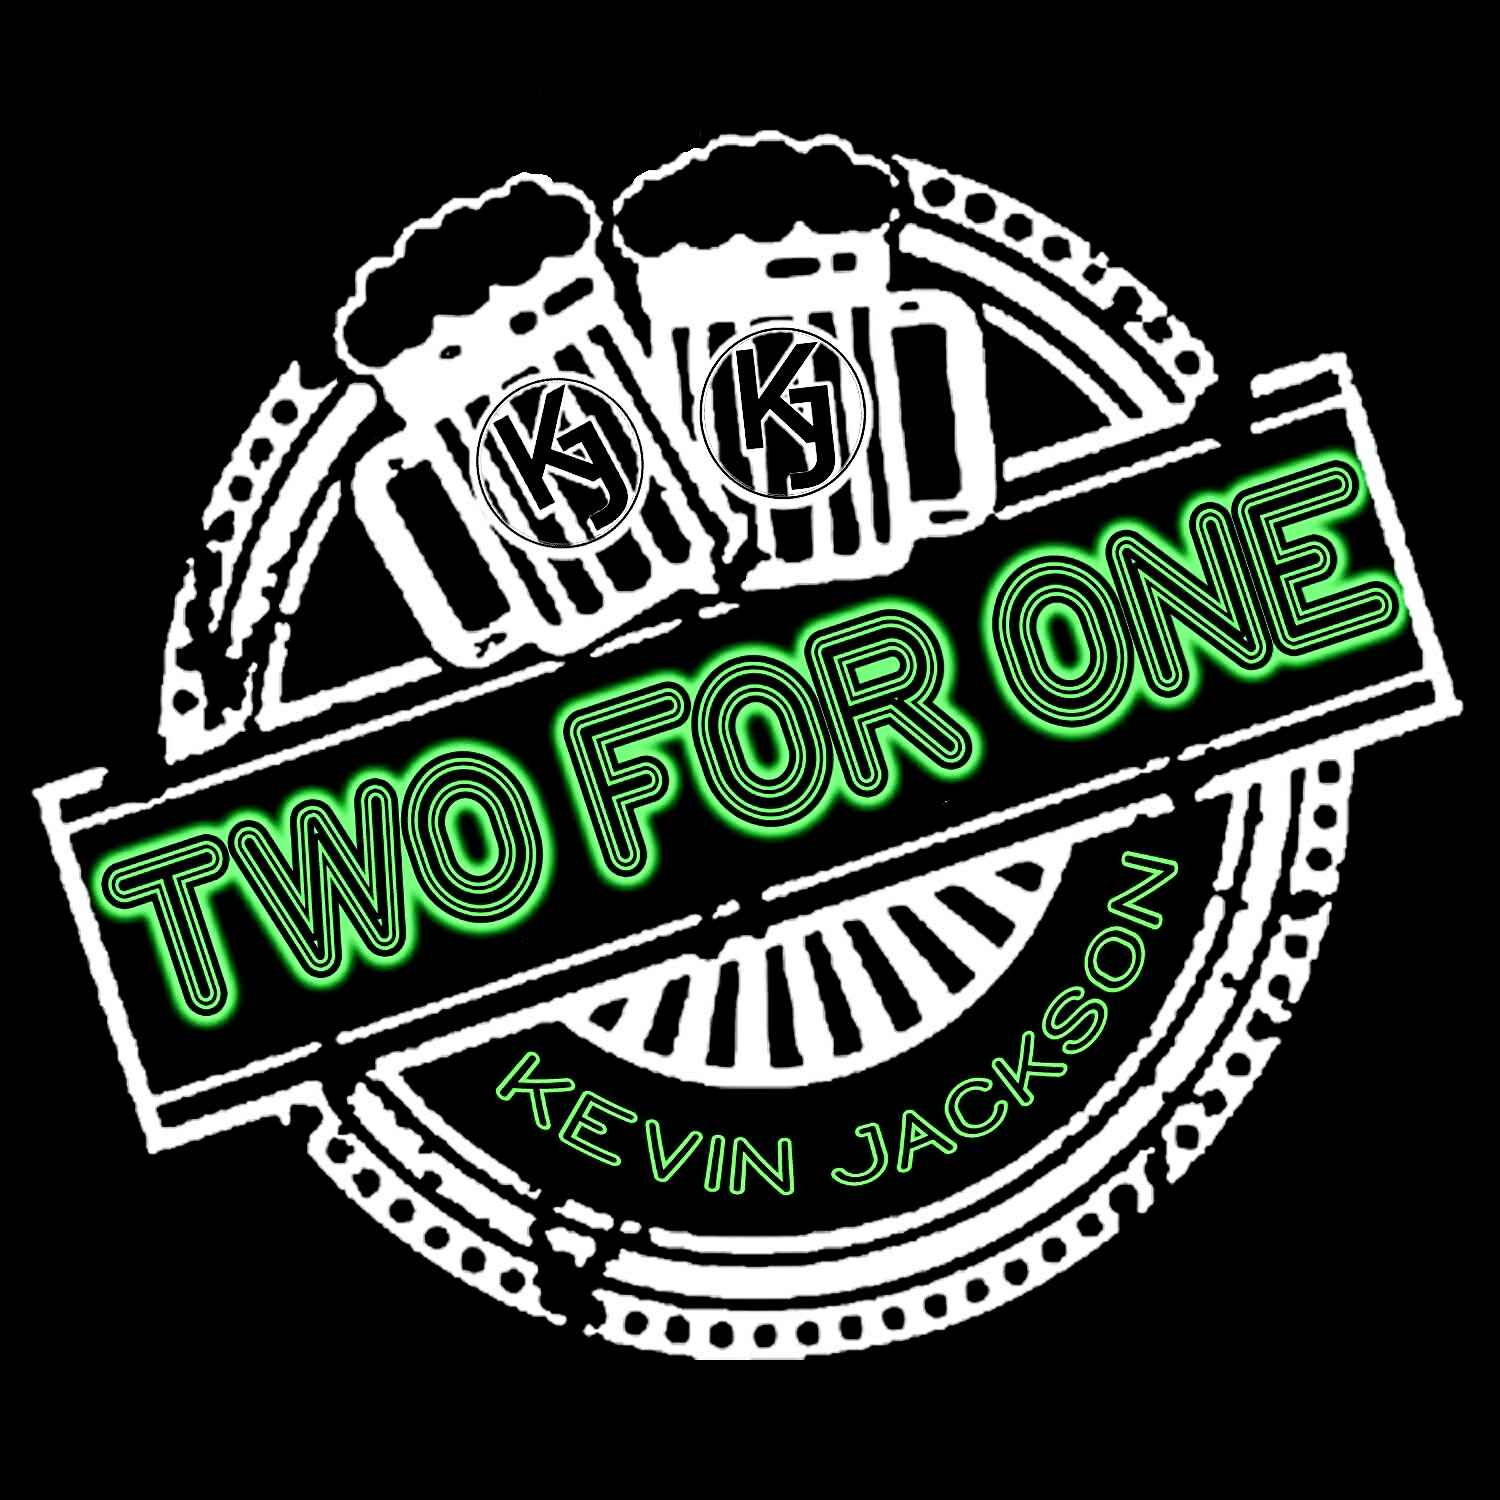 Kevin Jackson_TWO for ONE_LOGO